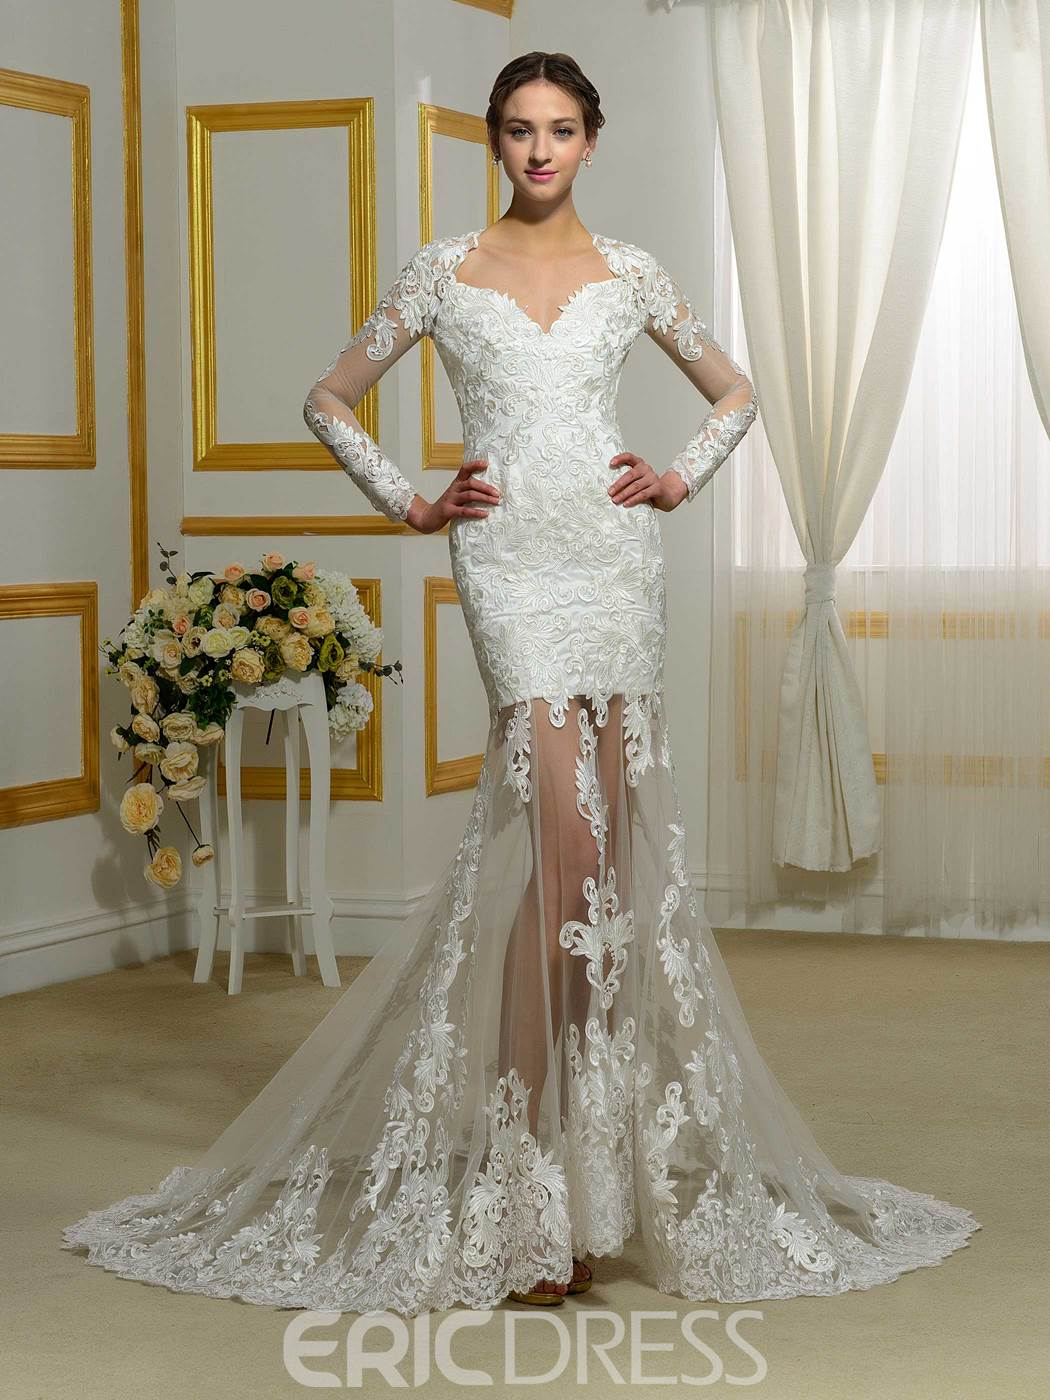 Ericdress Charming Long Sleeves Mermaid Backless Wedding Dress